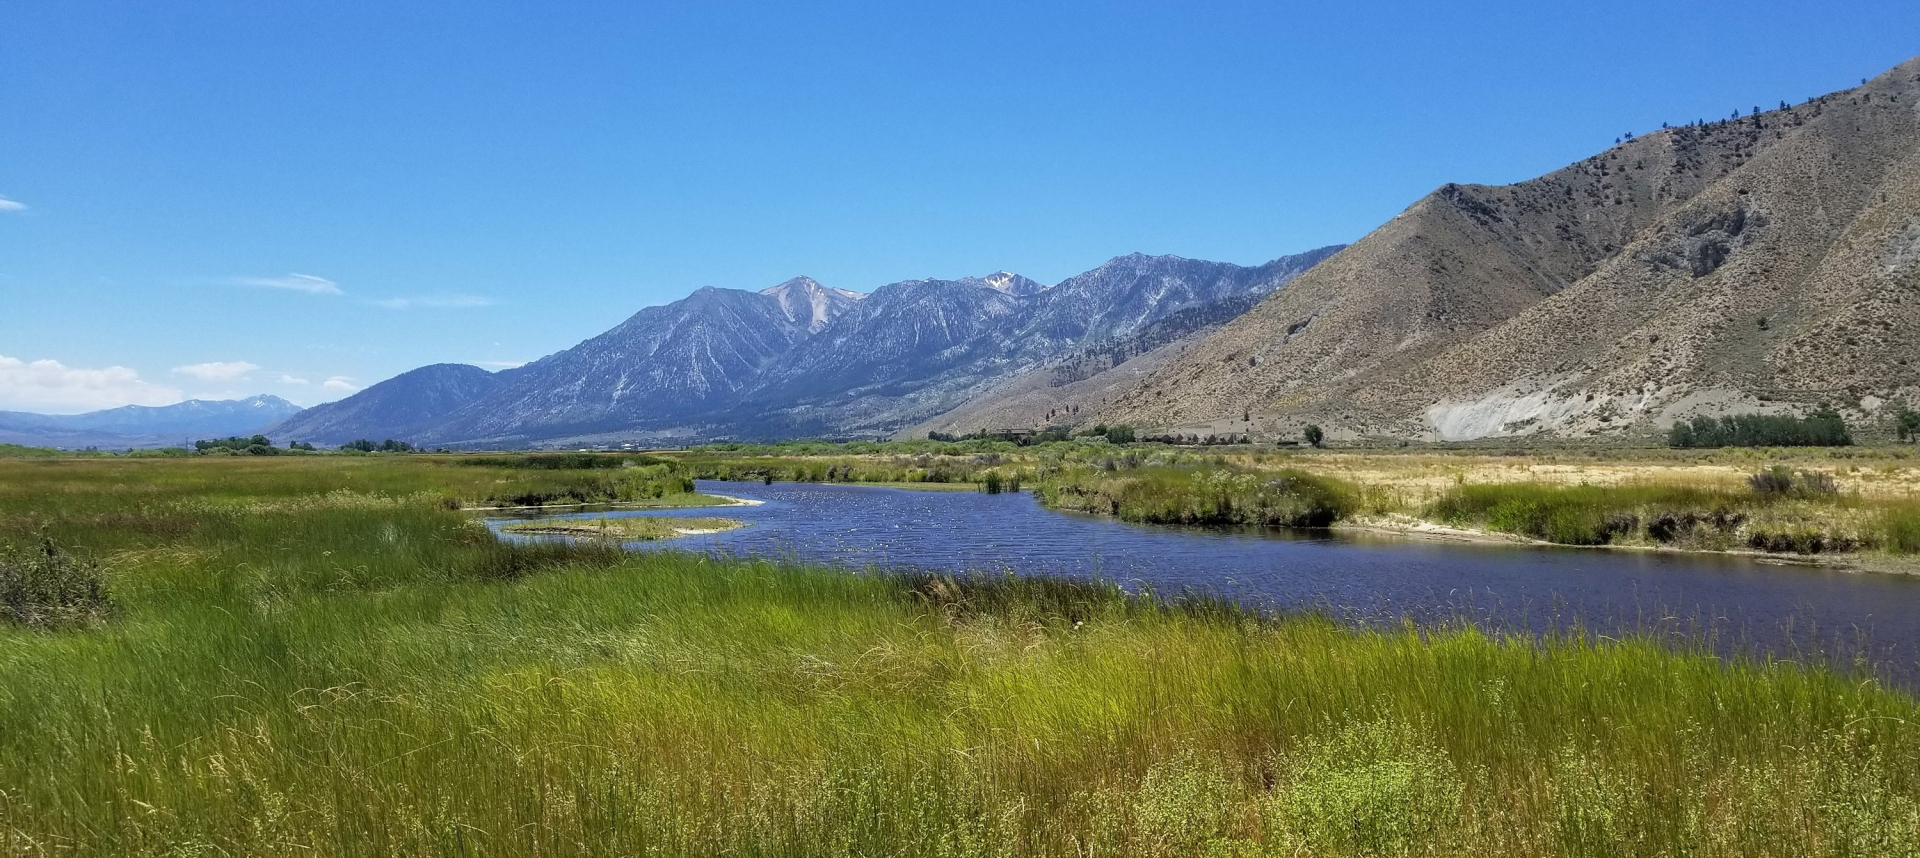 Eastern Sierra river, grass, and blue sky